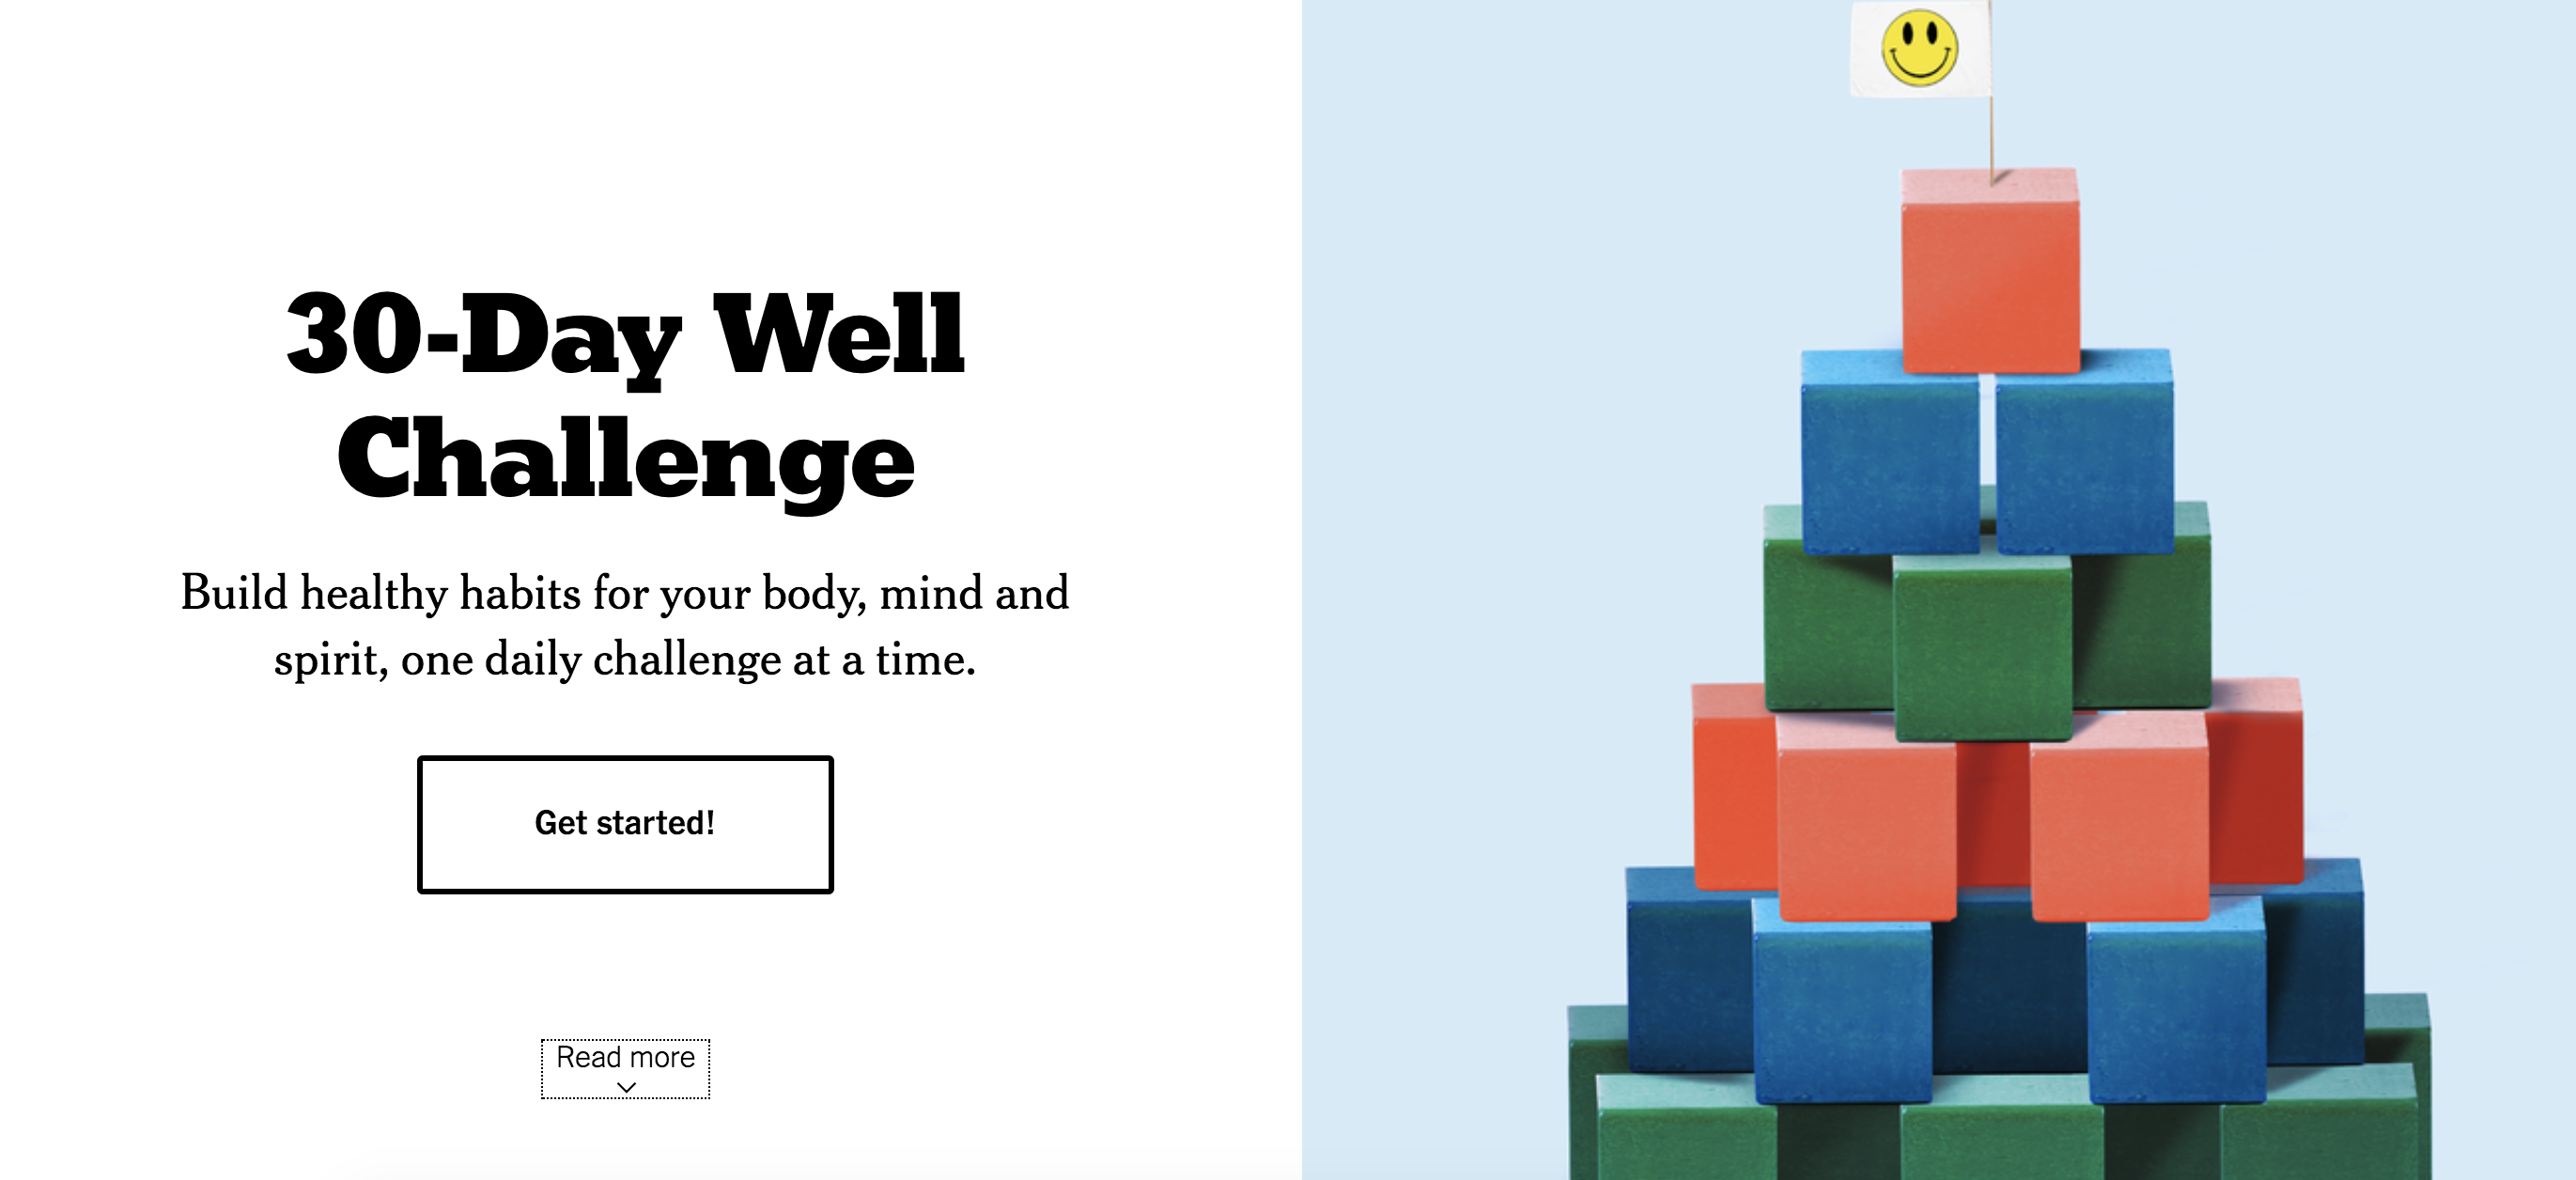 well-challenge-newsletter-nytimes